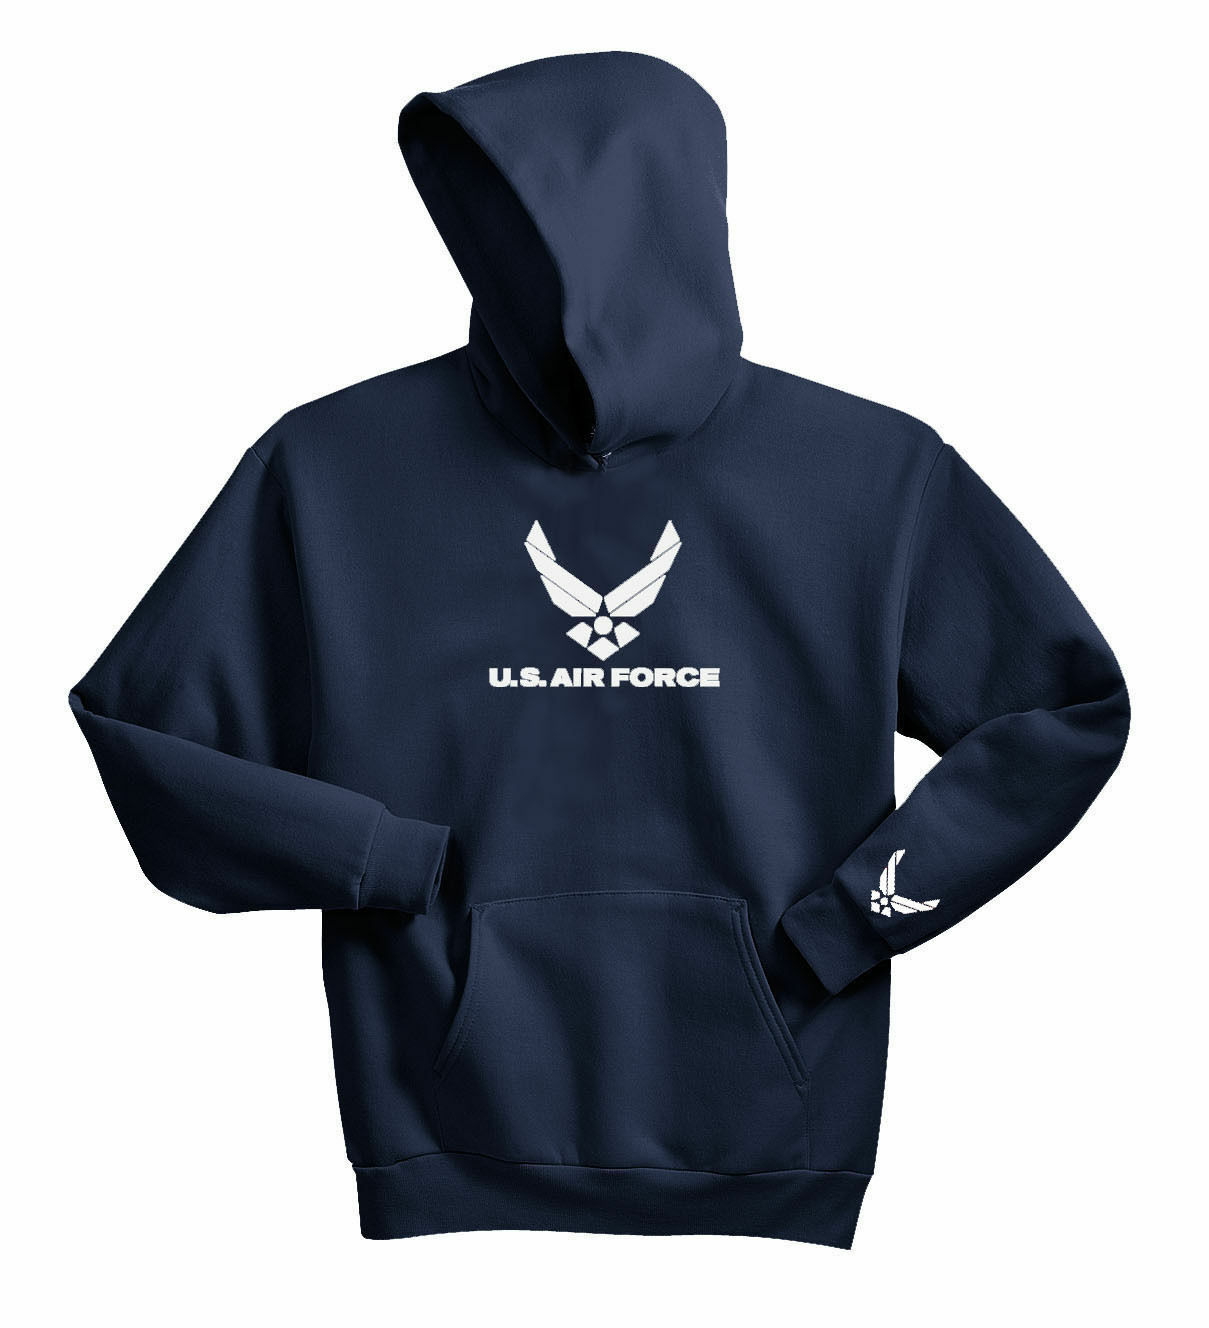 5a01fbdc012 U.S. AIR FORCE HOODIE SWEAT SHIRT USAF MILITARY NAVY blueE HOODY ...